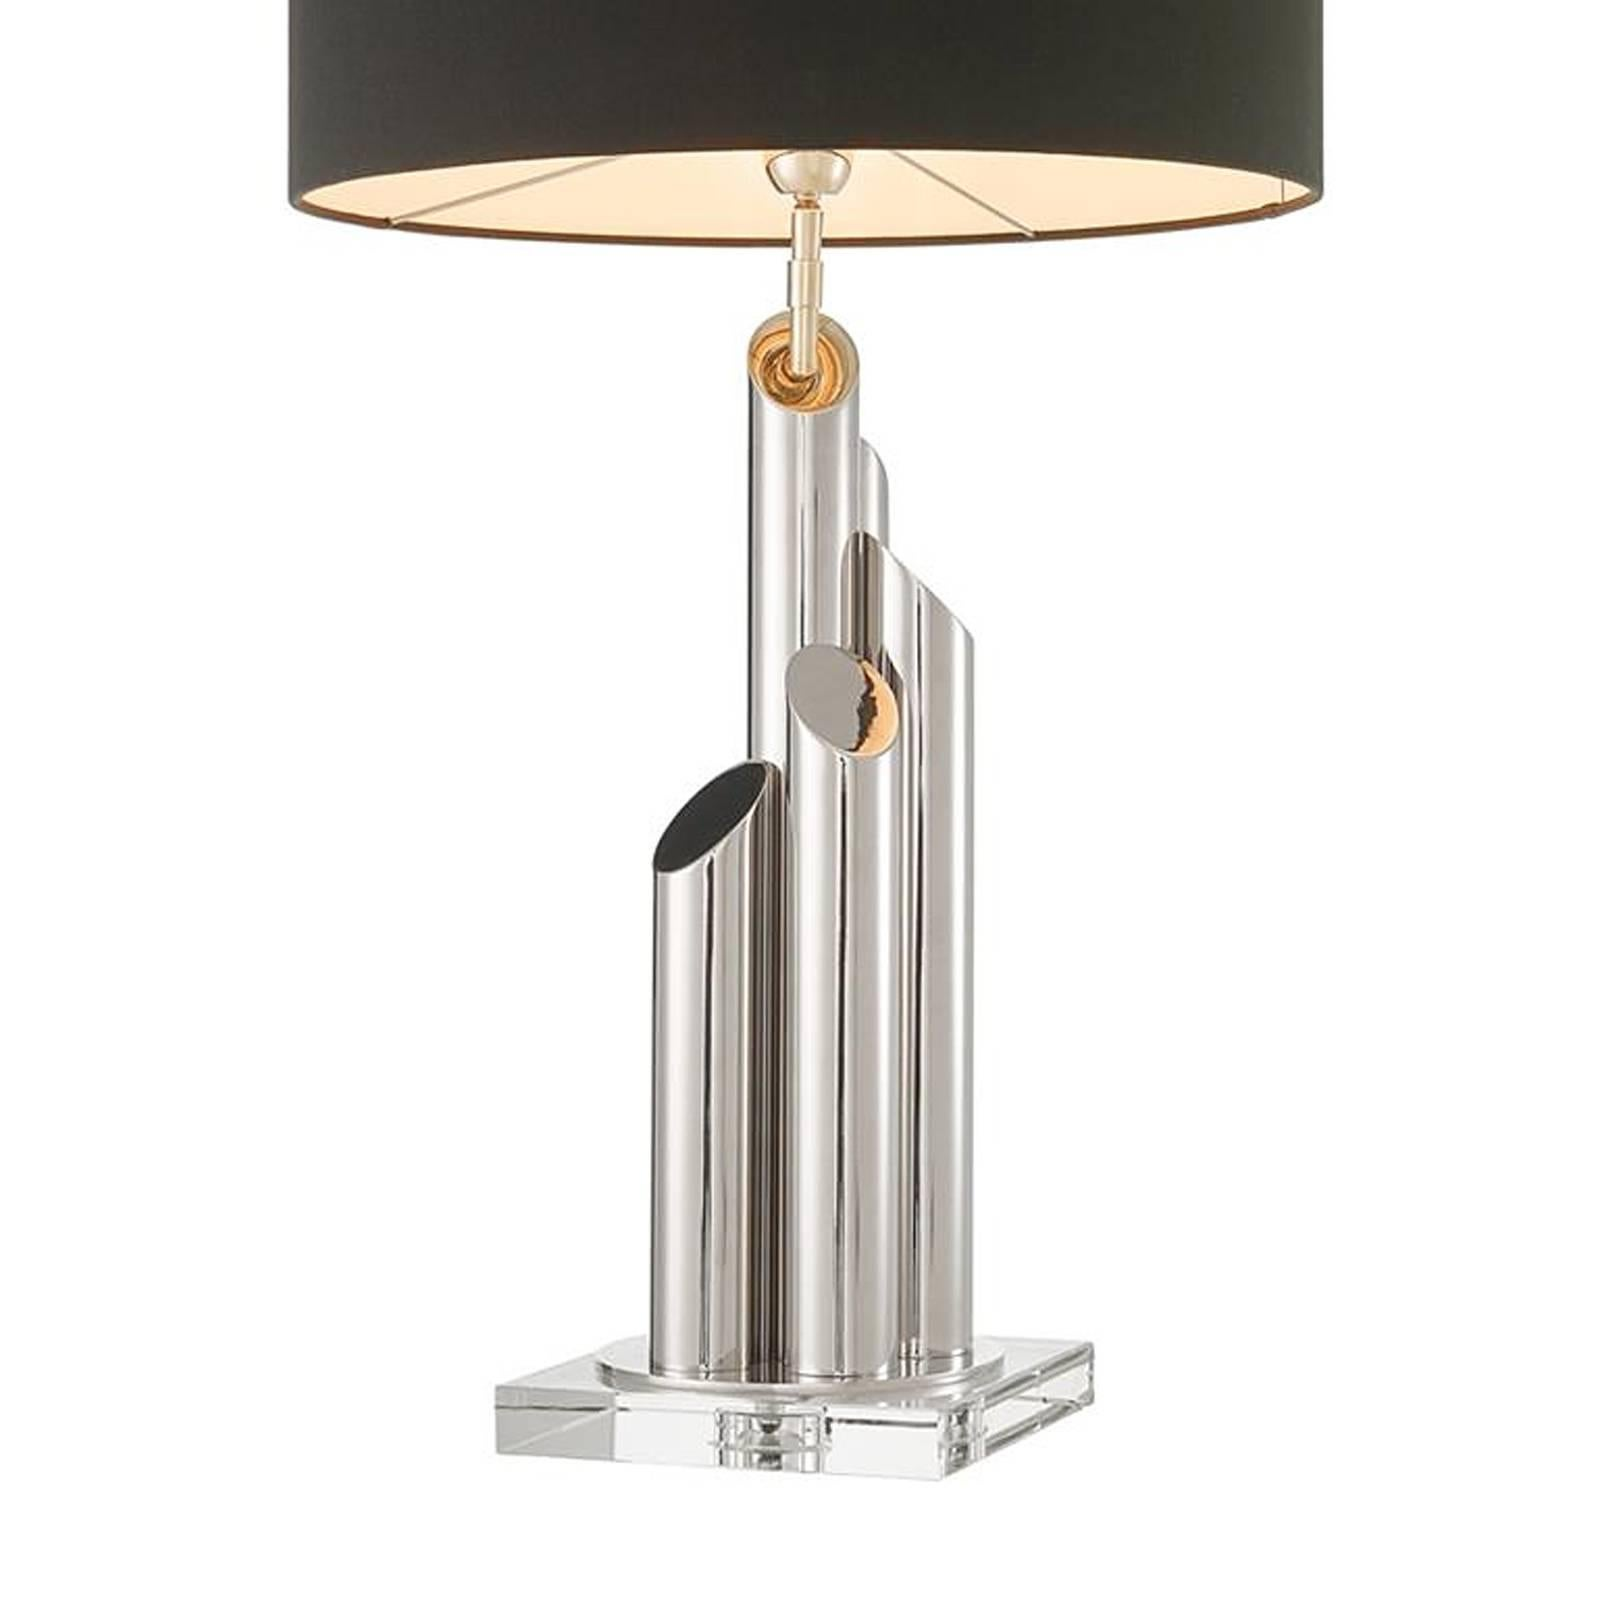 Glazed Tubes Nickel Table Lamp In Nickel Finish On Crystal Glass Base For  Sale